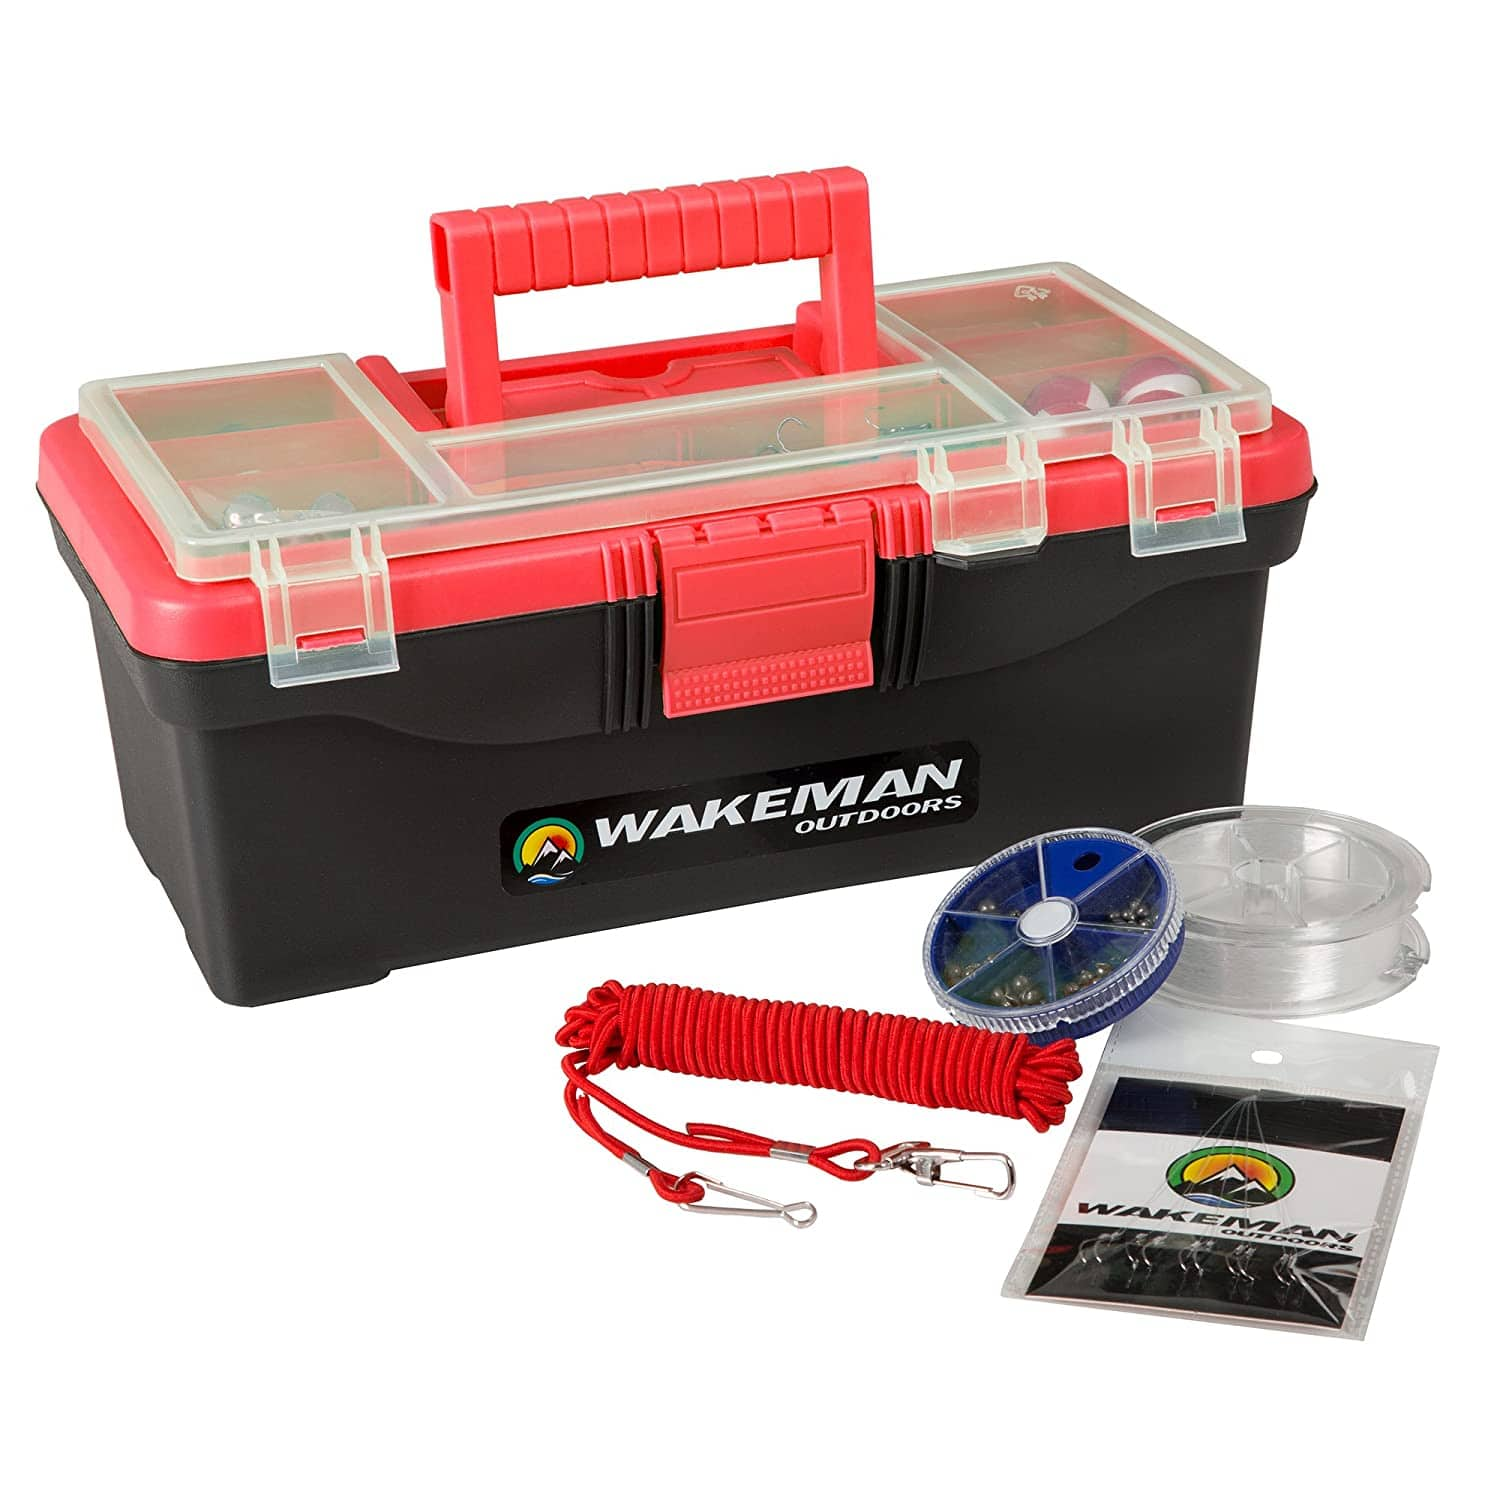 55-Piece Wakeman Outdoors Fishing Tackle Box / Tackle Kit (Red) $15 + Free Shipping w/ Prime or $25+